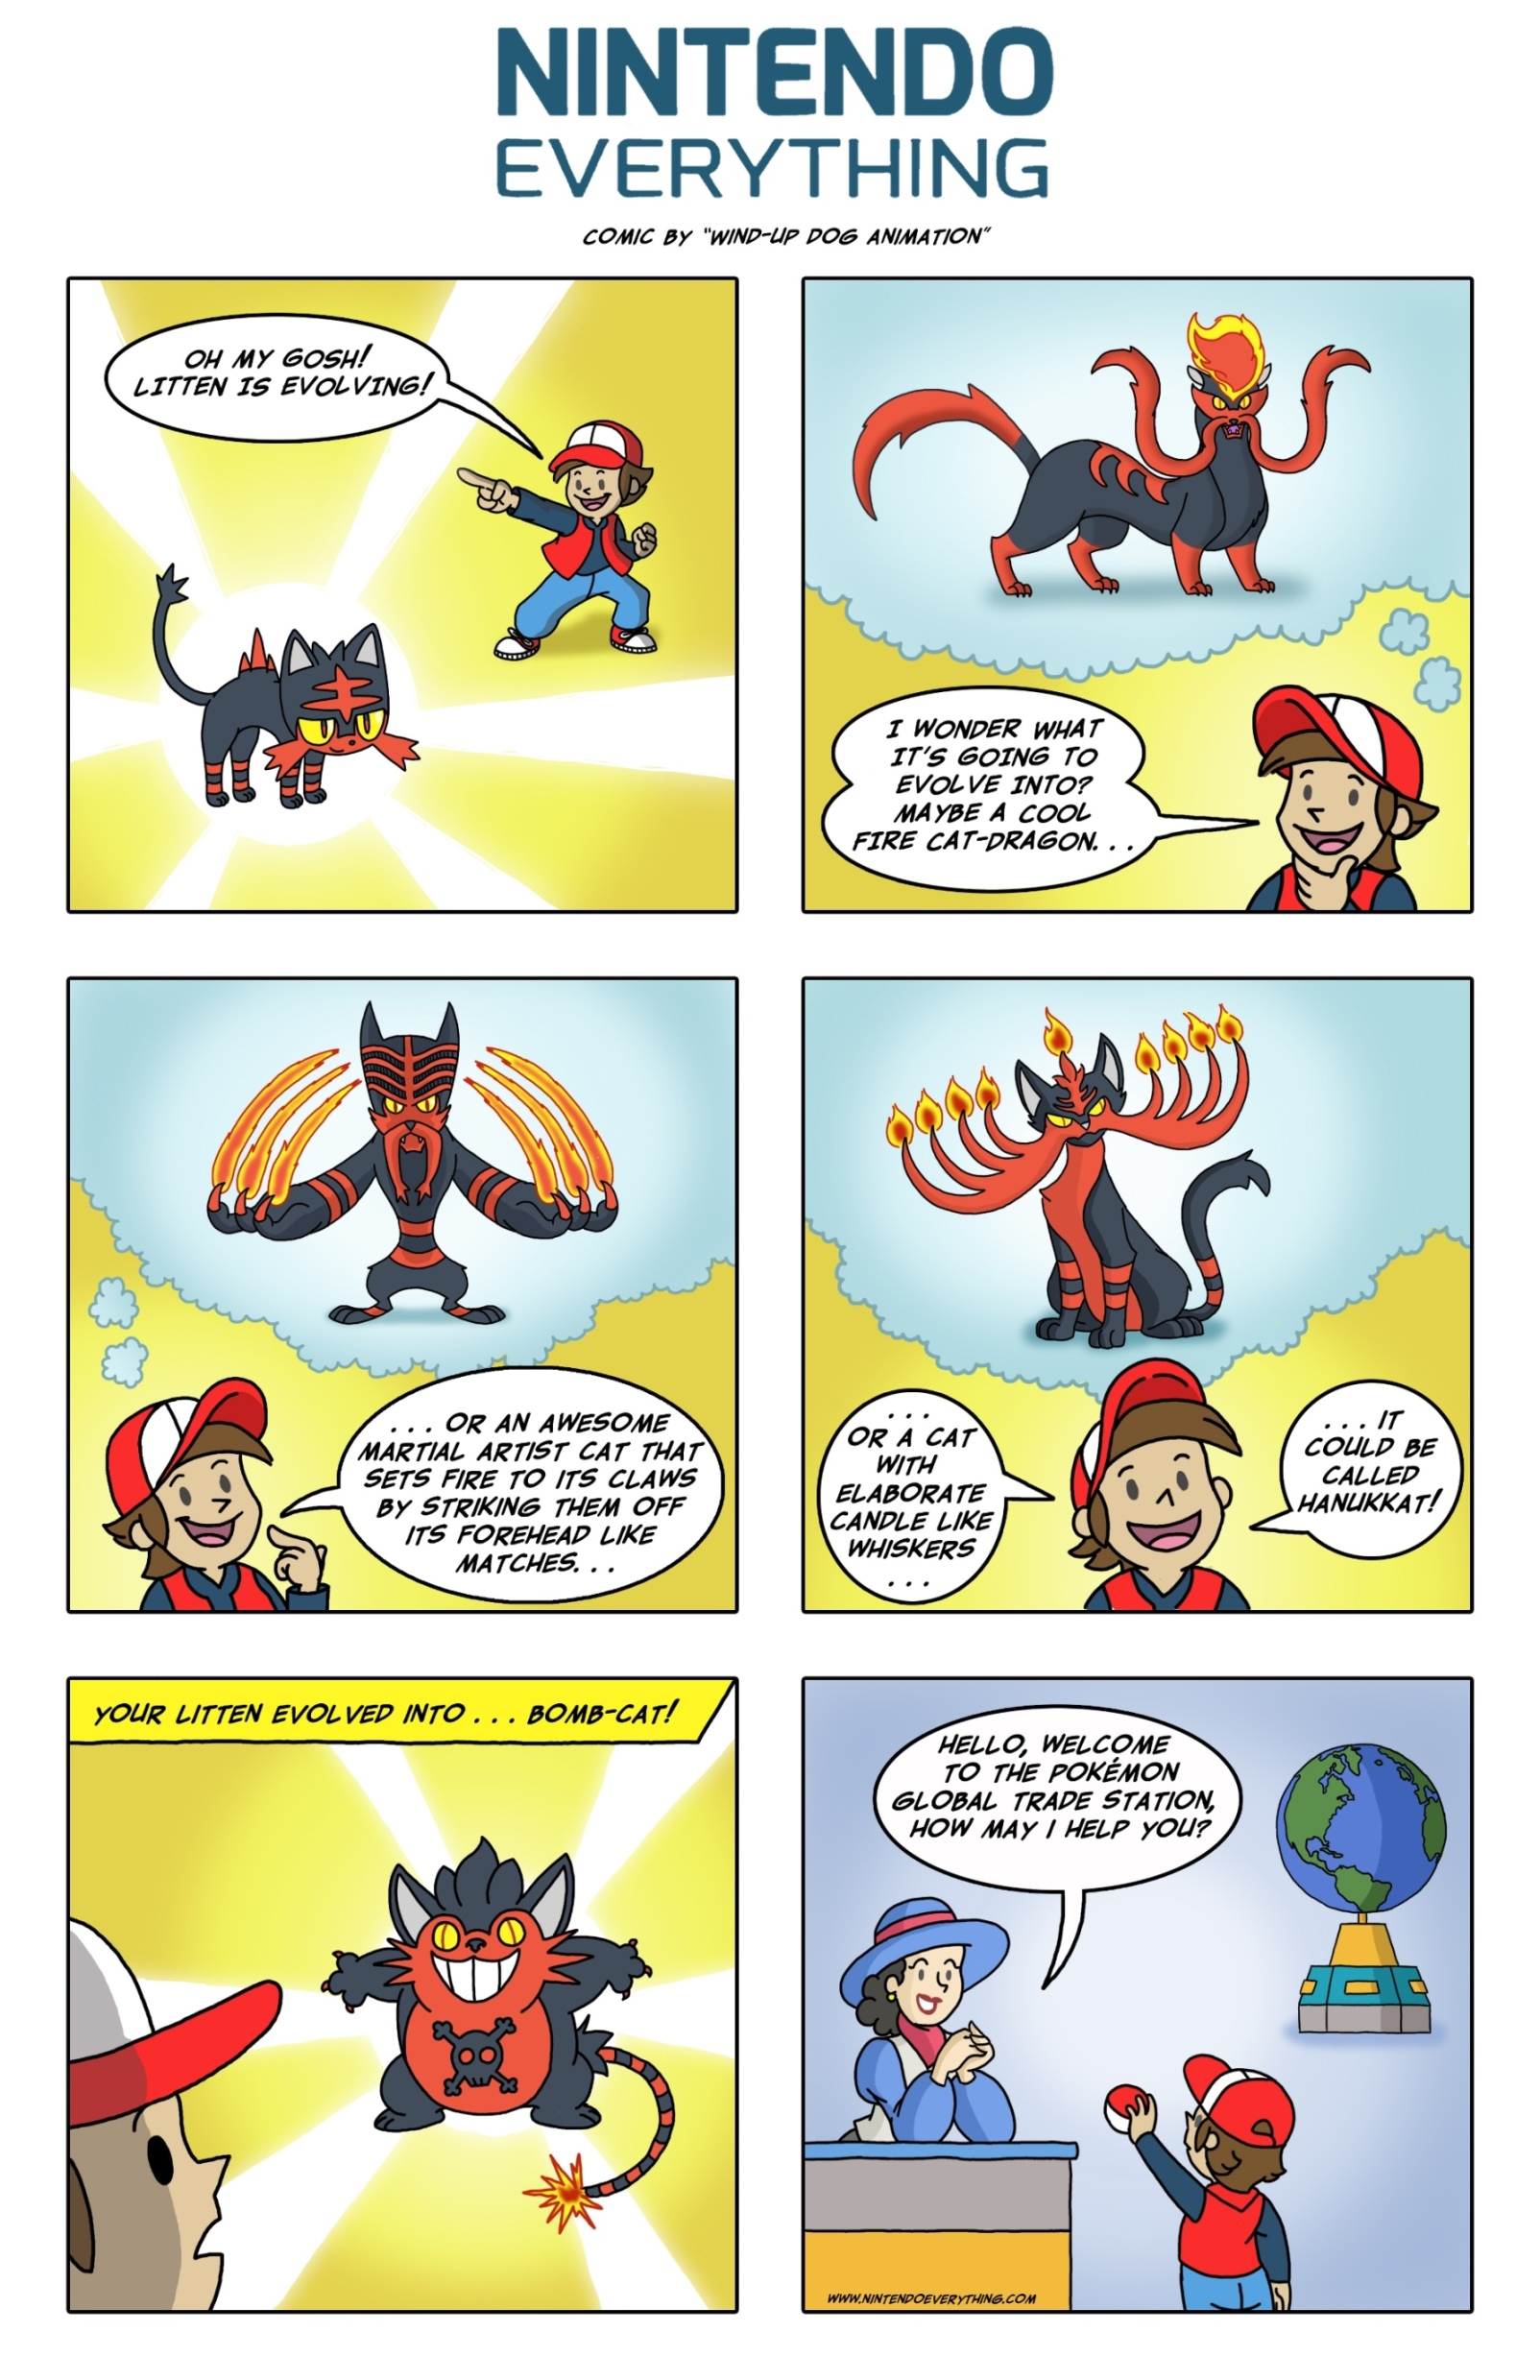 nintendo-everything-comic-11